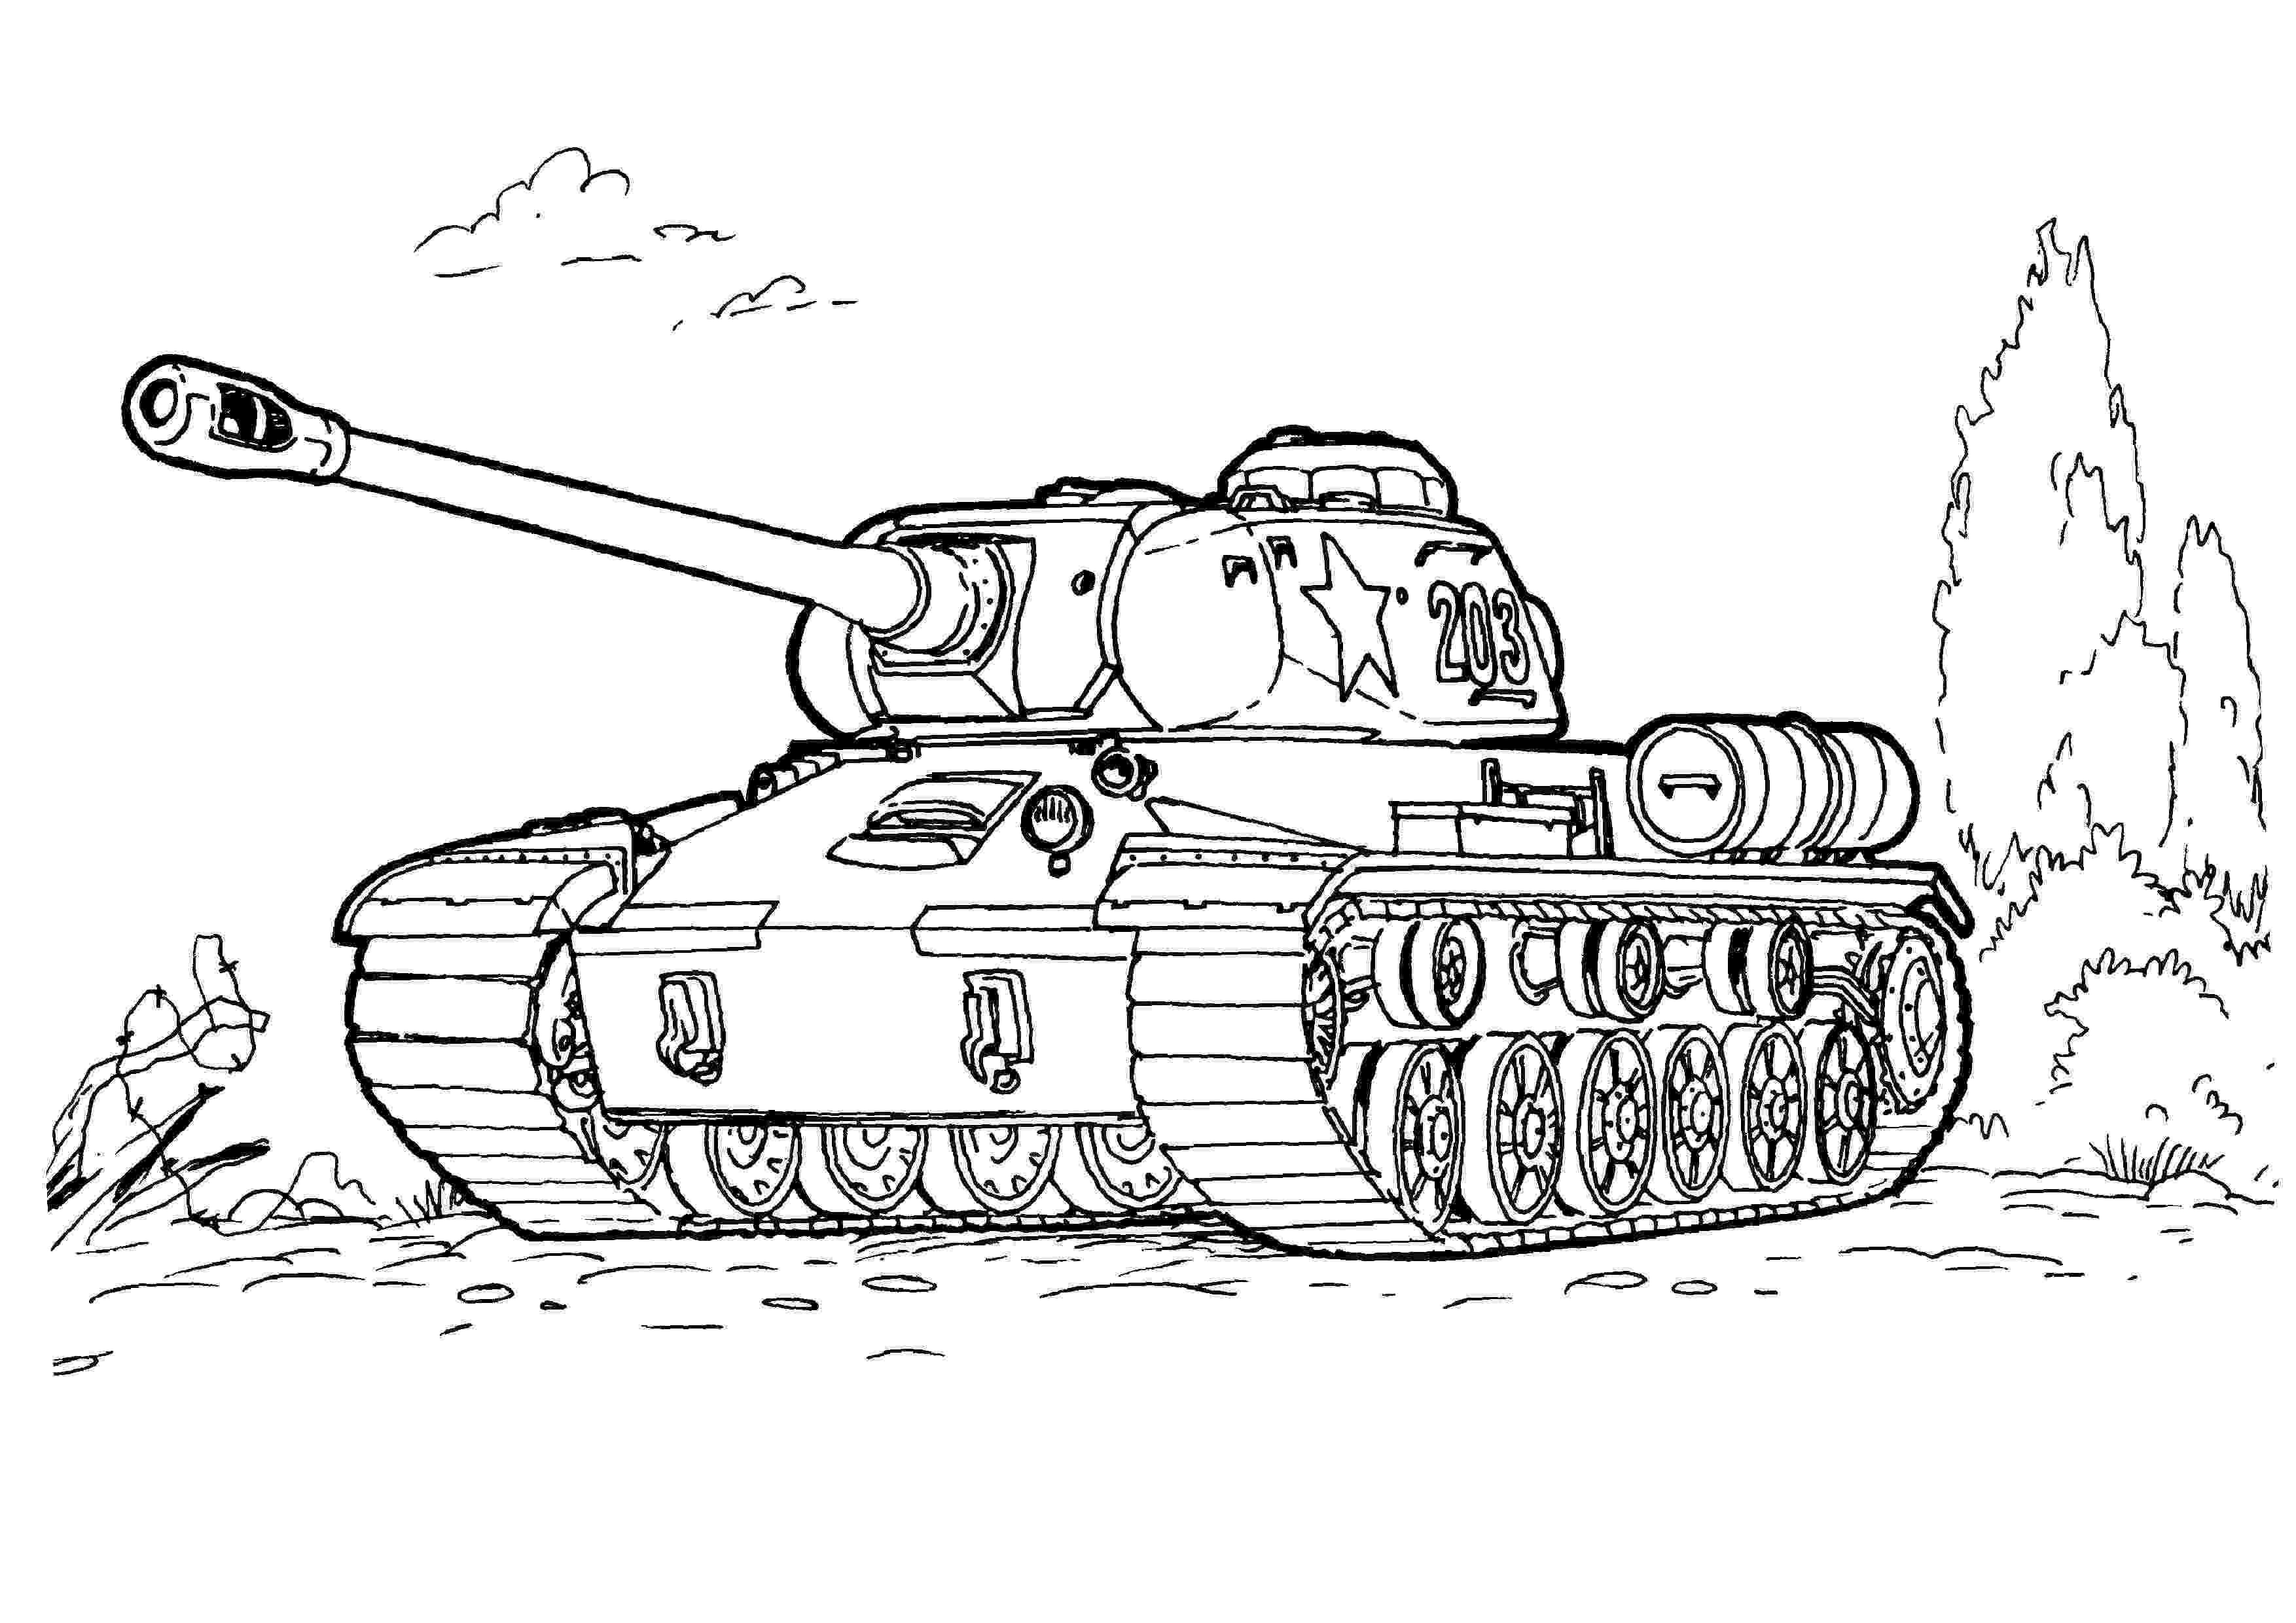 army colouring pictures free printable army coloring pages for kids army pictures colouring